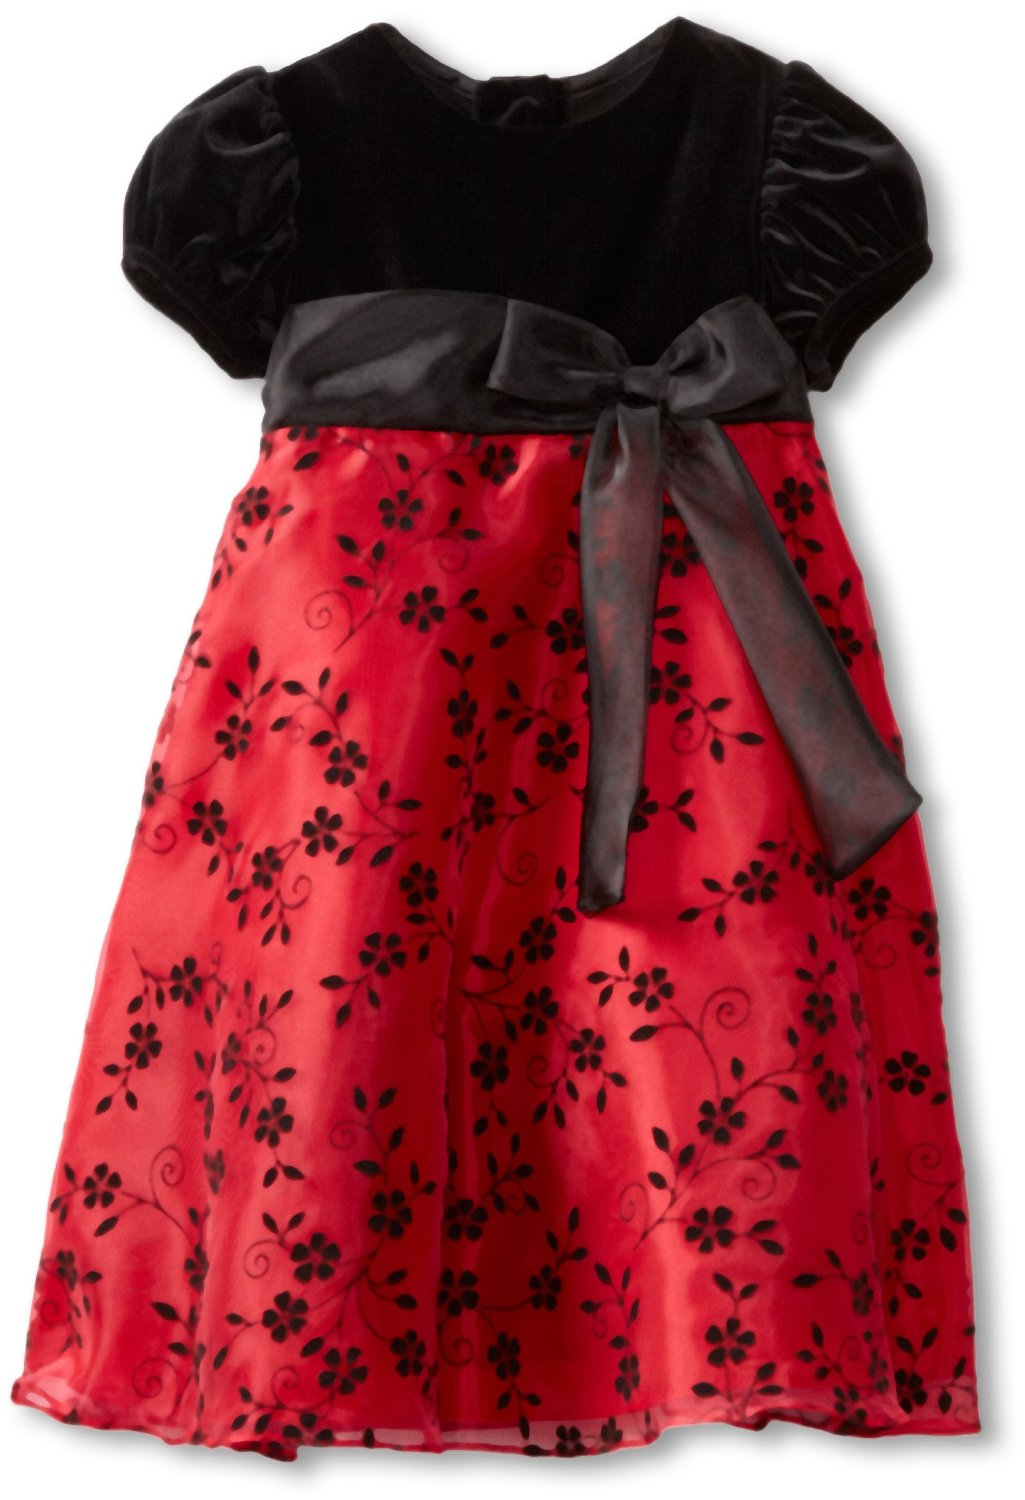 Rare-Editions-Girls-2-6x-Flocked-Dress Red Dress for Little Girls